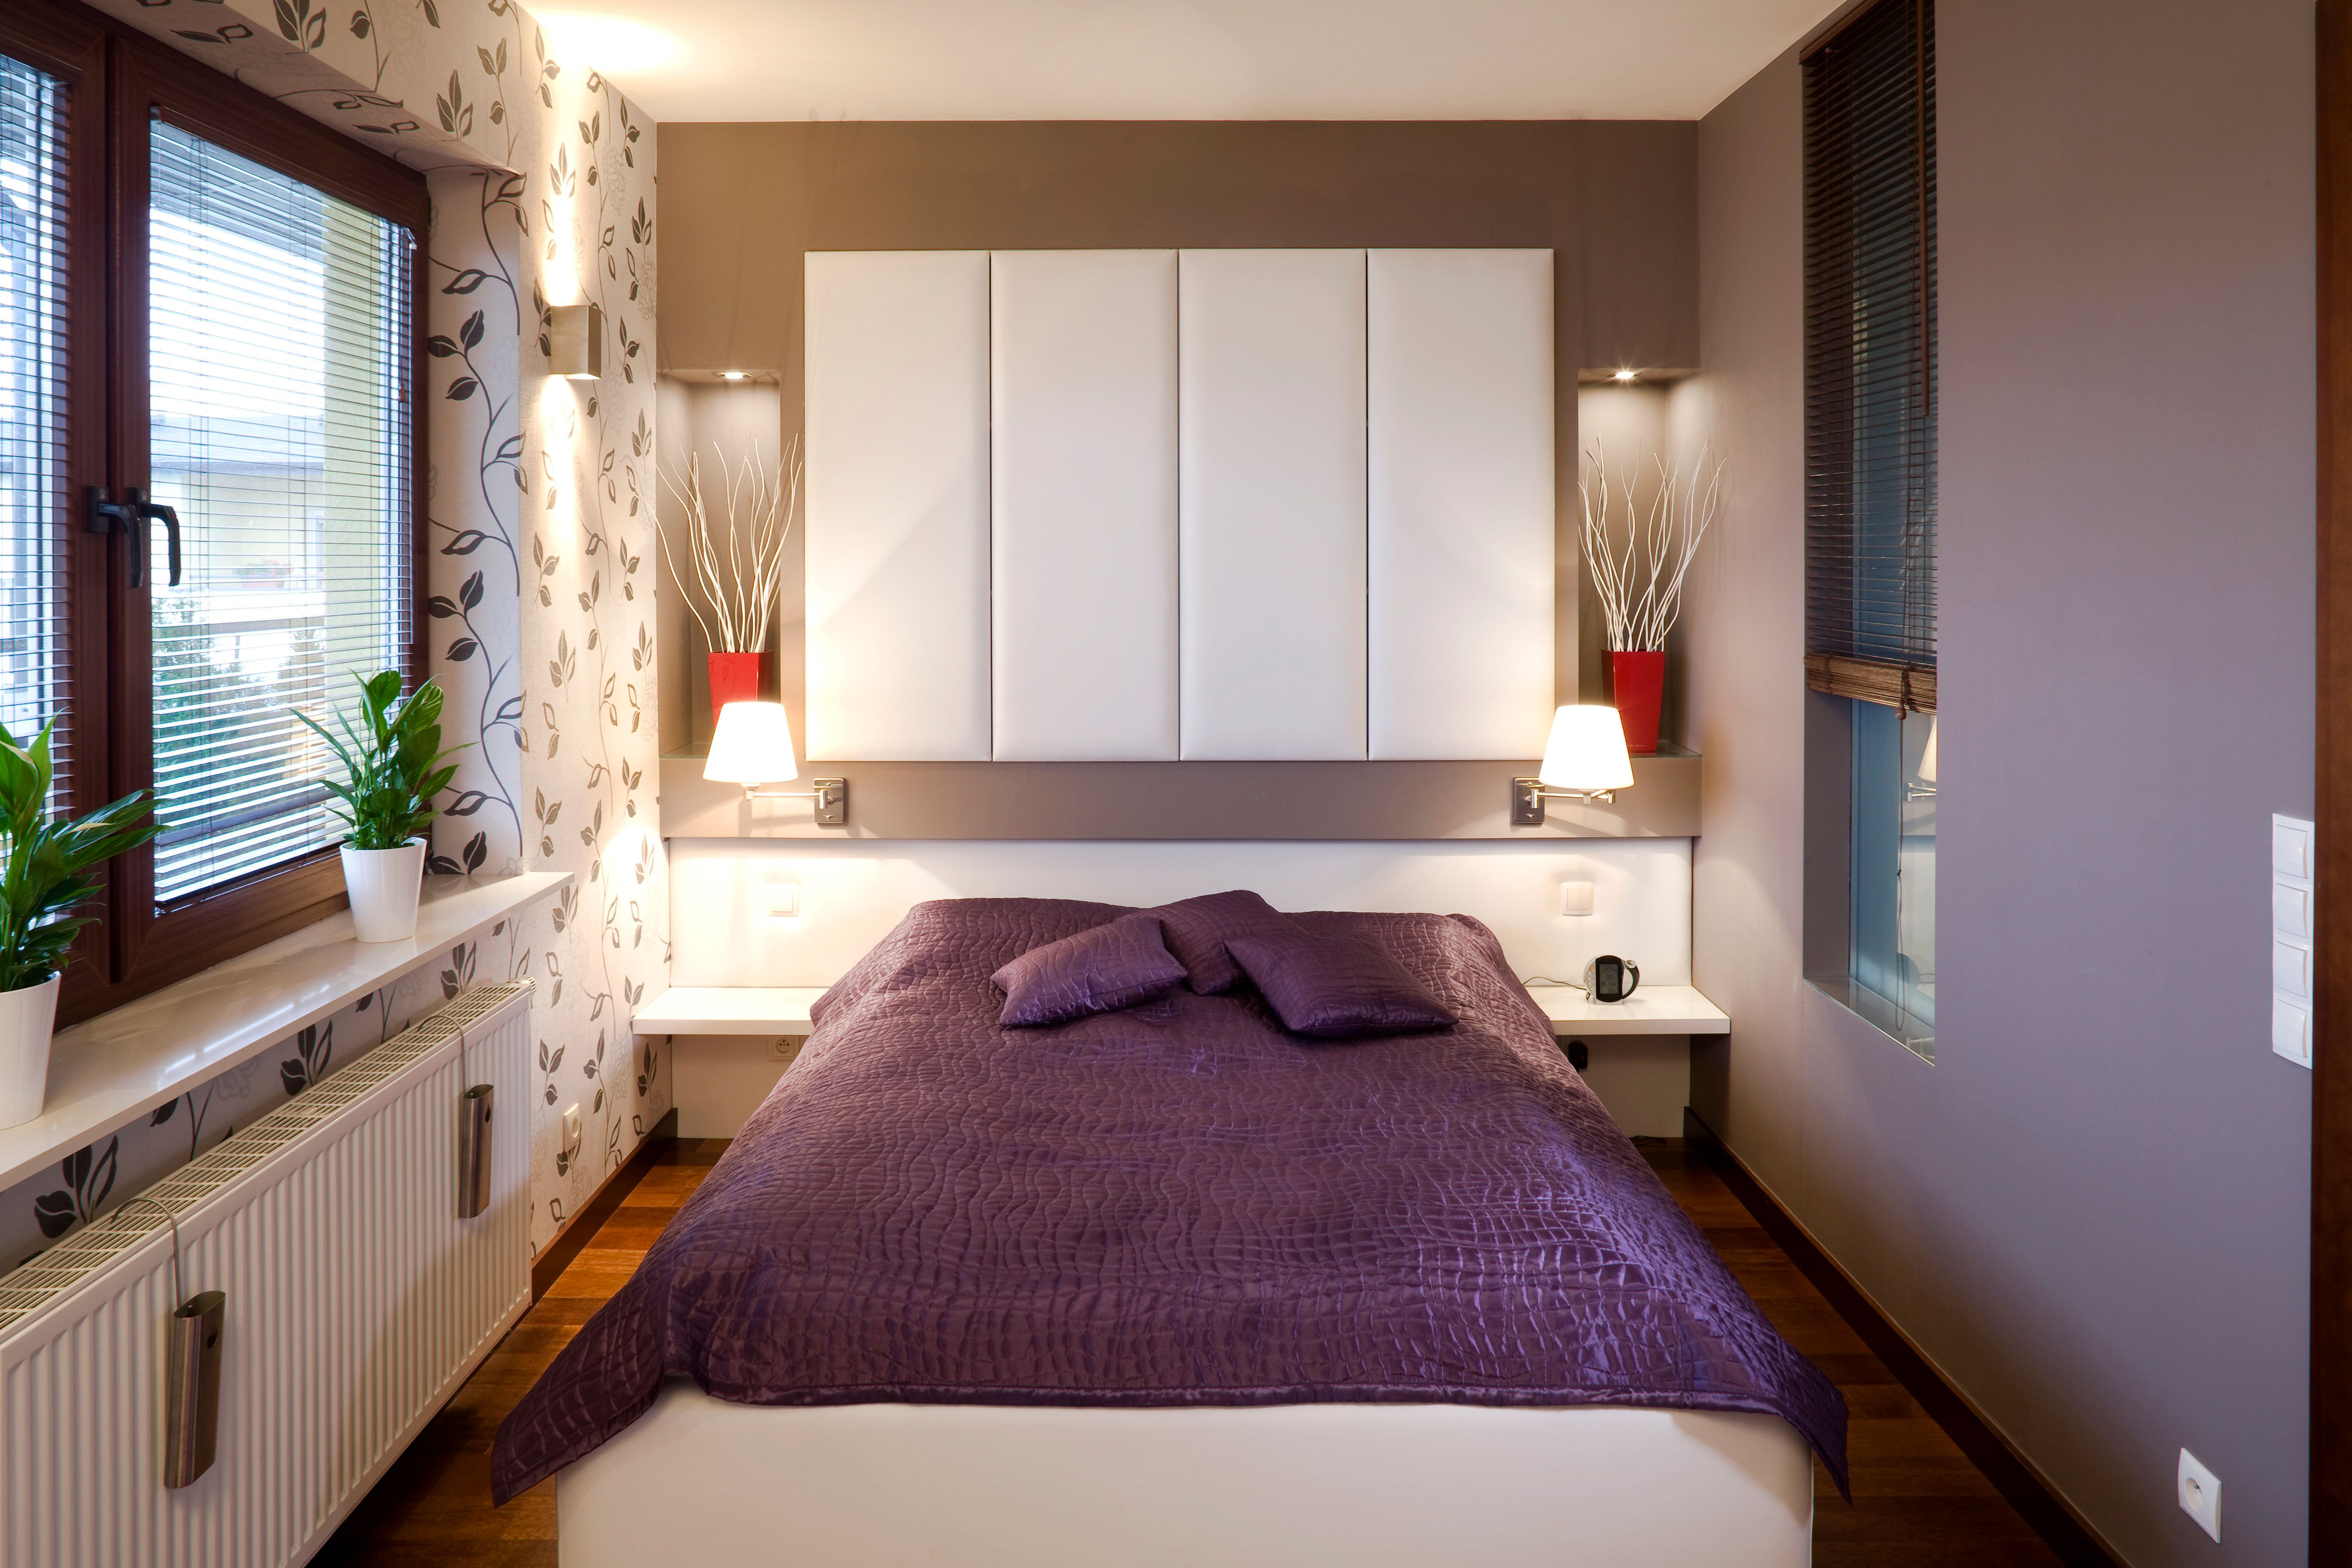 Bedroom On Images of Inspiring